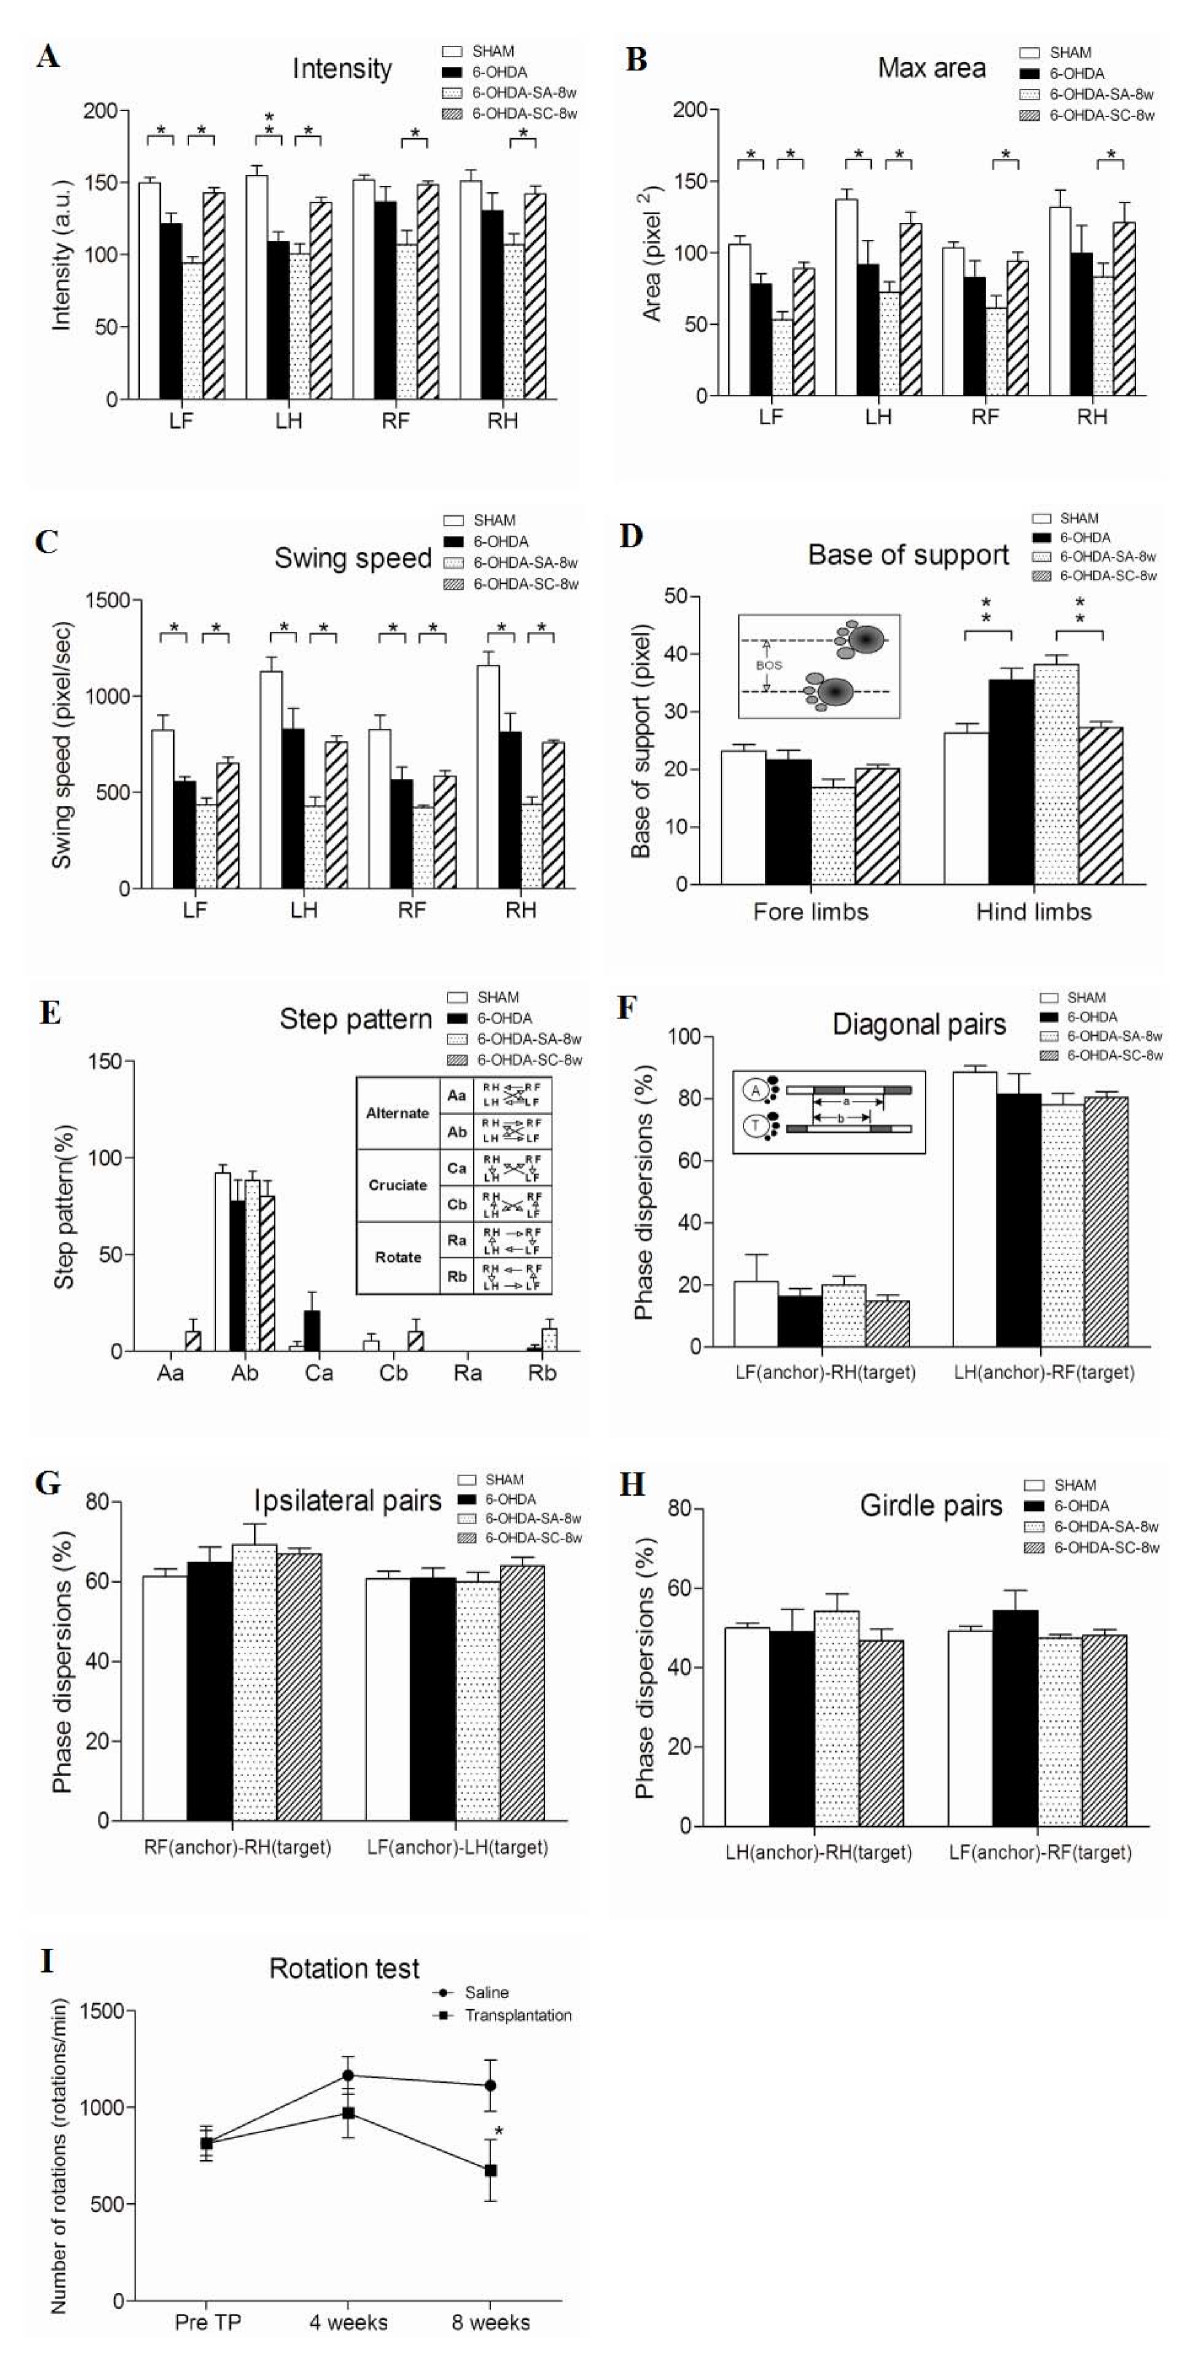 https://static-content.springer.com/image/art%3A10.1186%2F1423-0127-17-9/MediaObjects/12929_2009_Article_123_Fig1_HTML.jpg